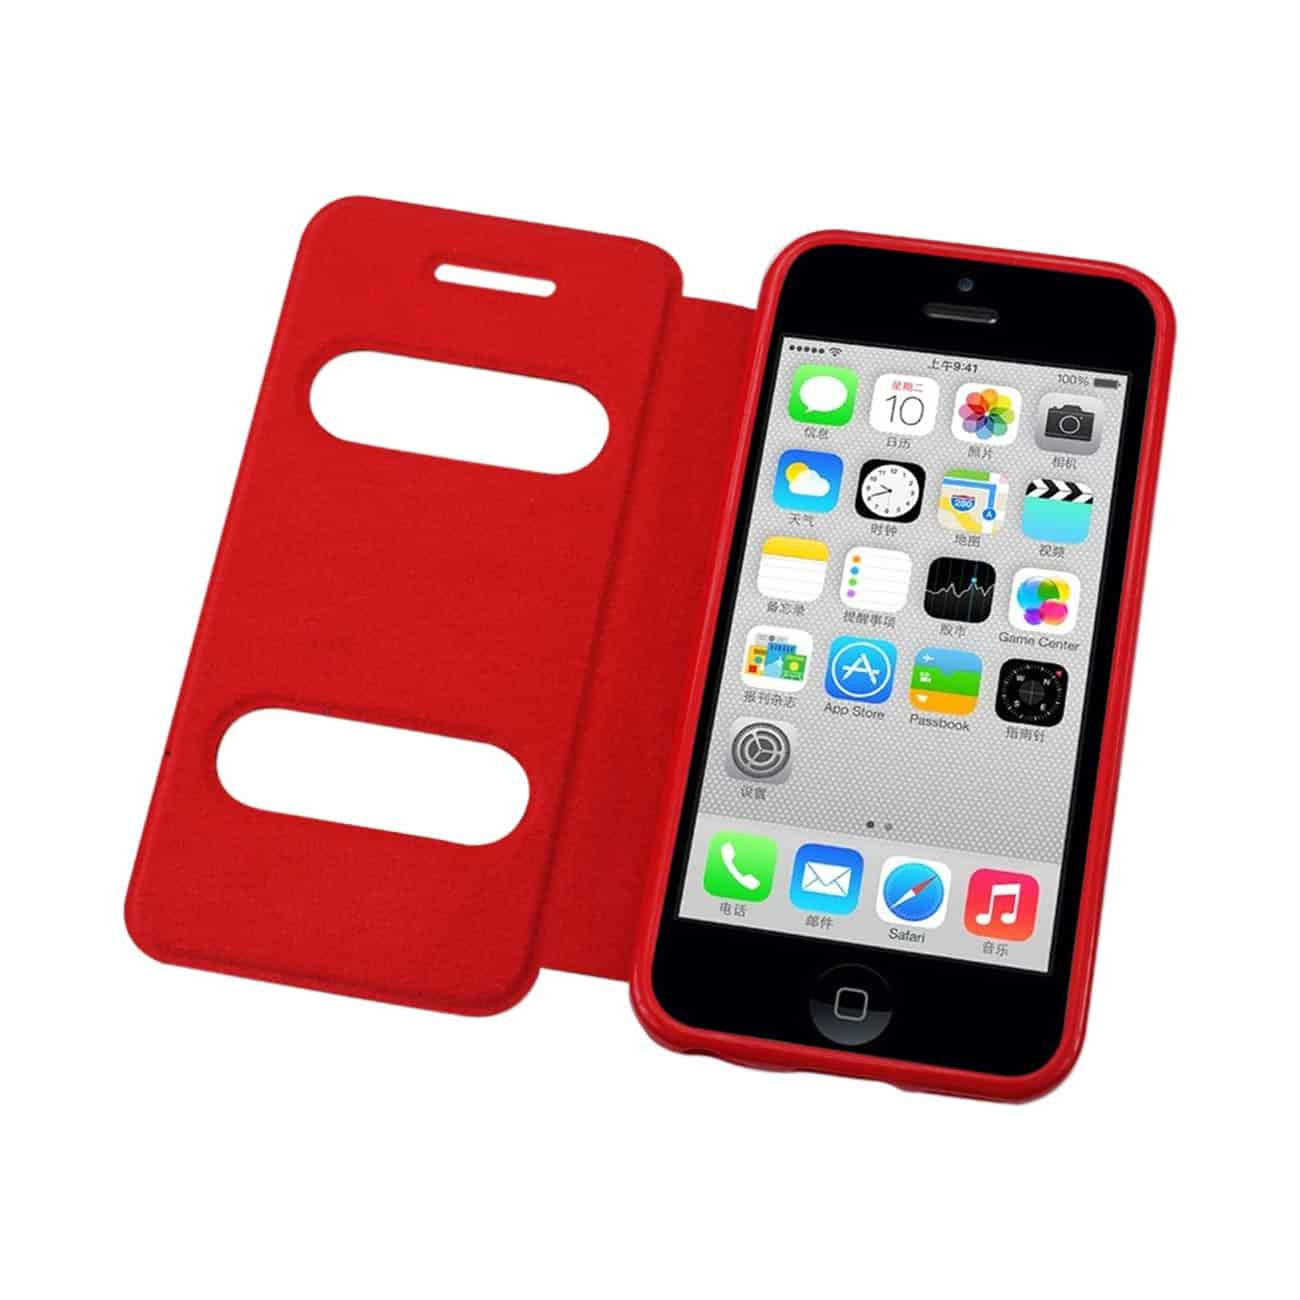 IPHONE 5C WINDOW FLIP FOLIO CASE IN RED